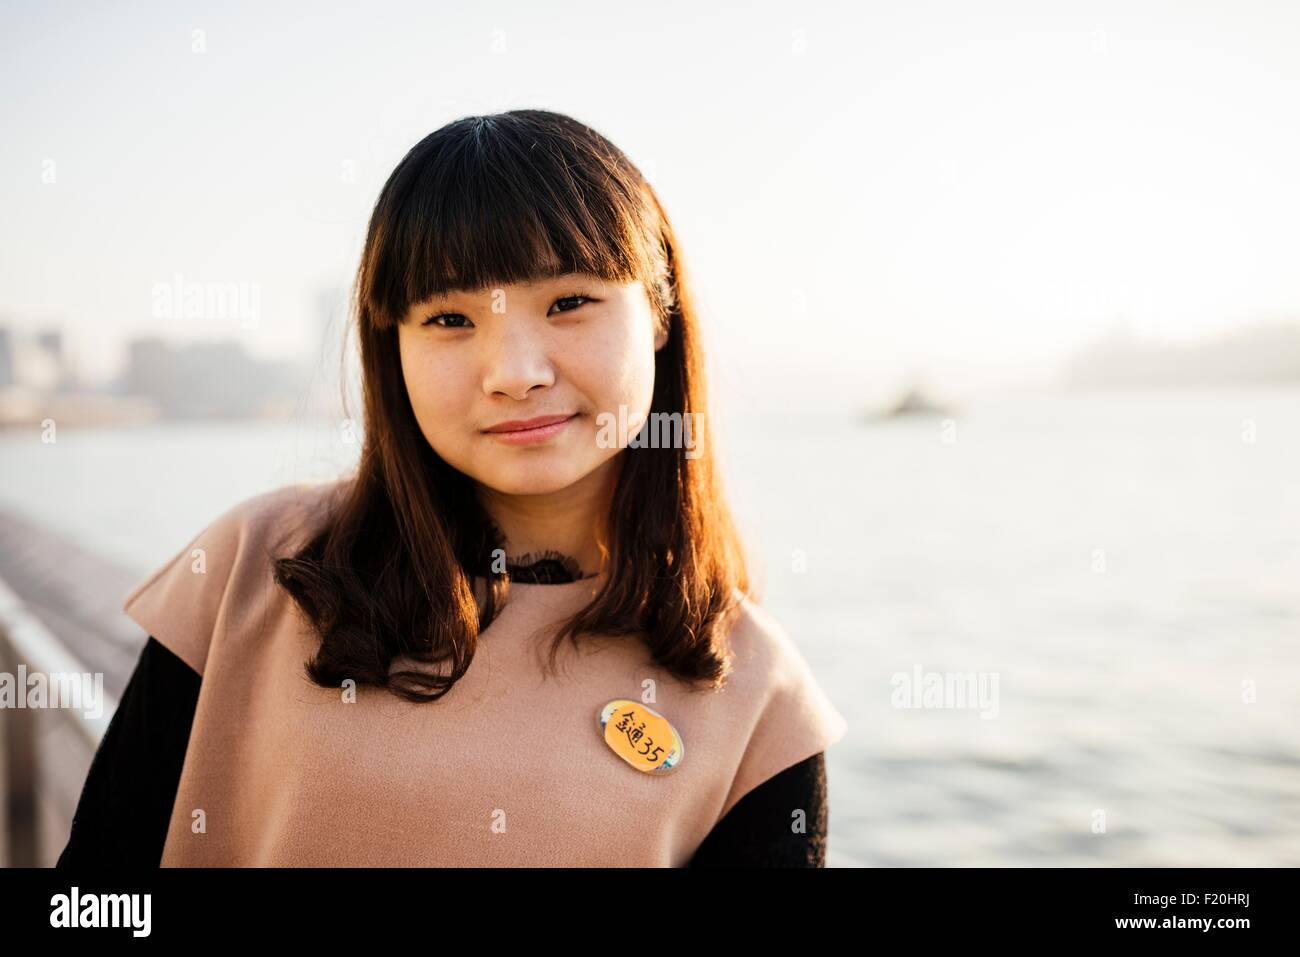 Portrait of young woman with fringe in front of water, looking at camera - Stock Image